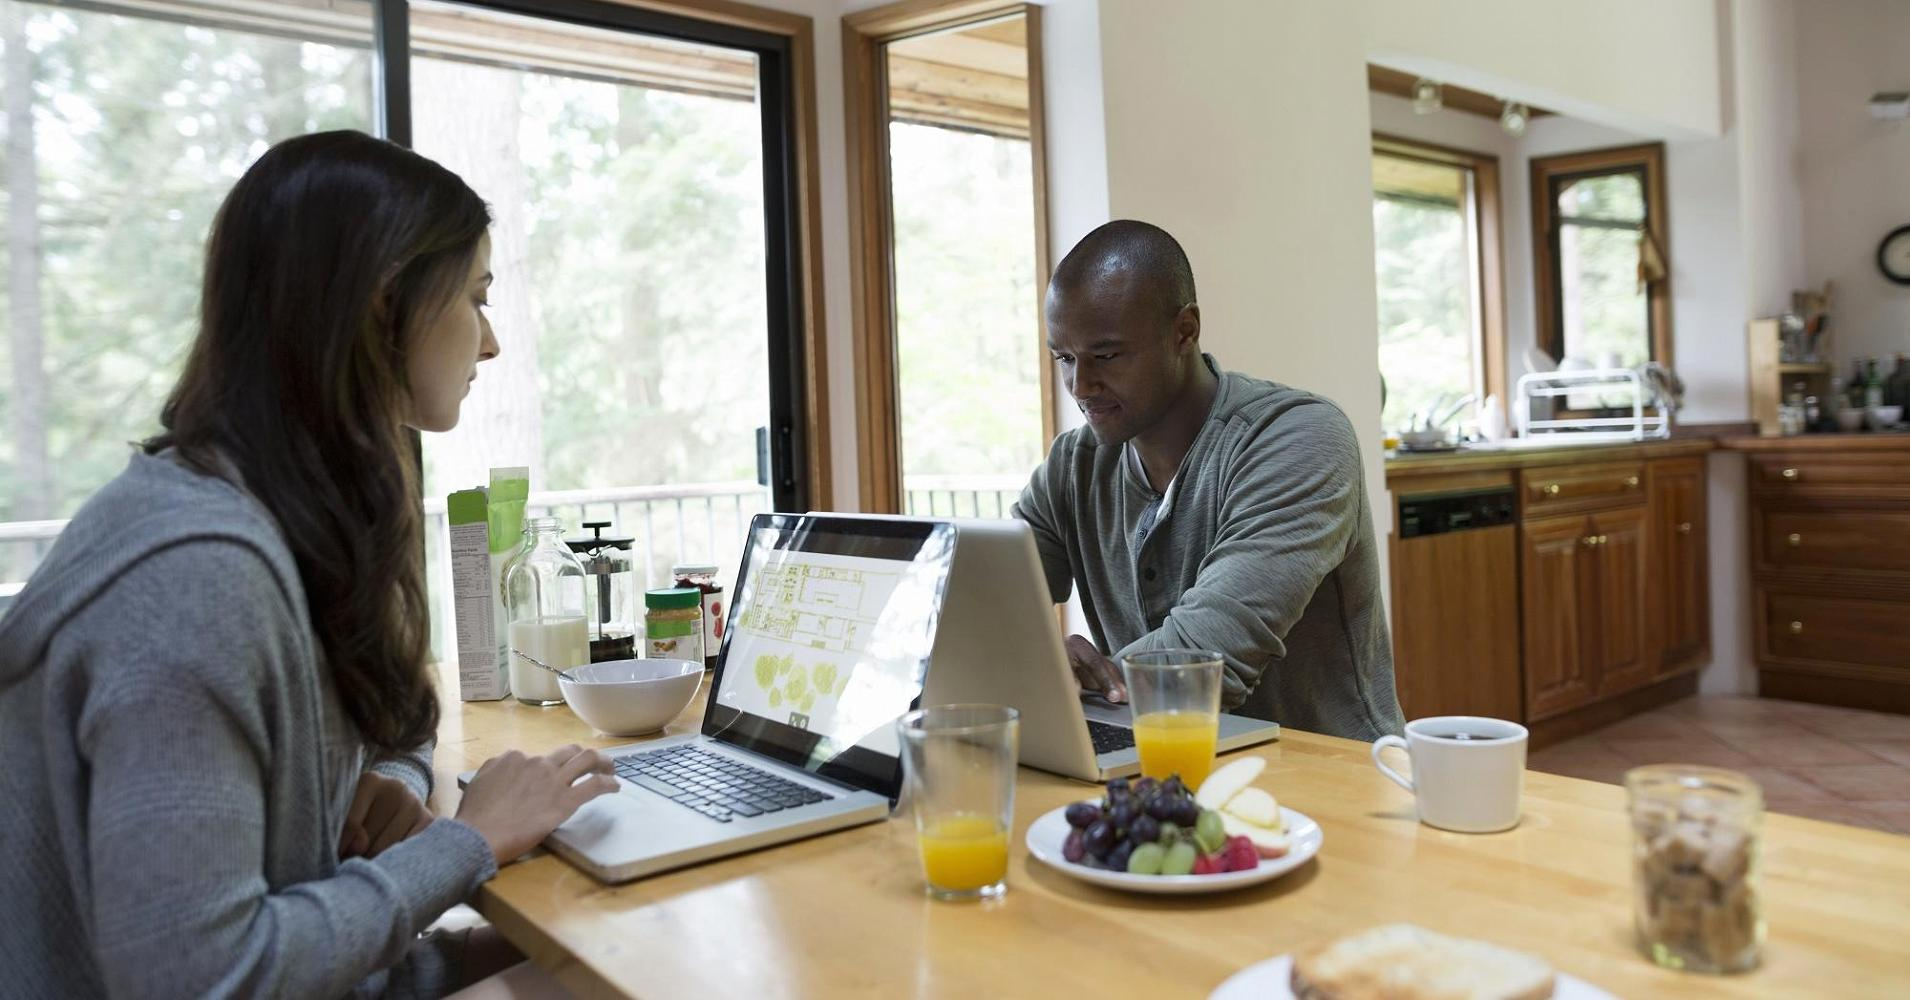 Why working from home is becoming increasingly popular